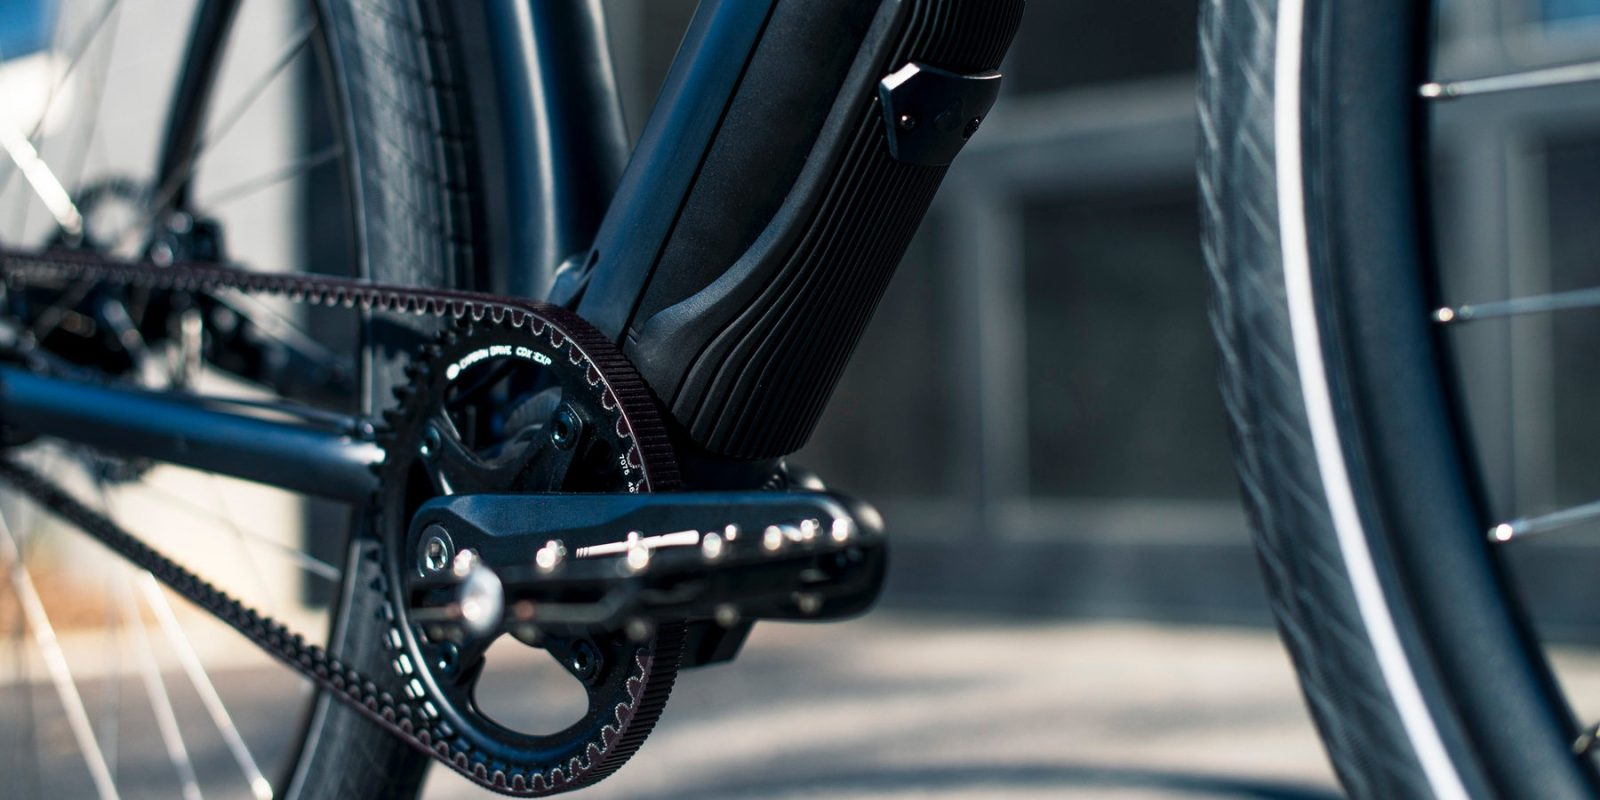 2019 Budnitz Model E electric bicycle now features removable motor and Gates belt drive